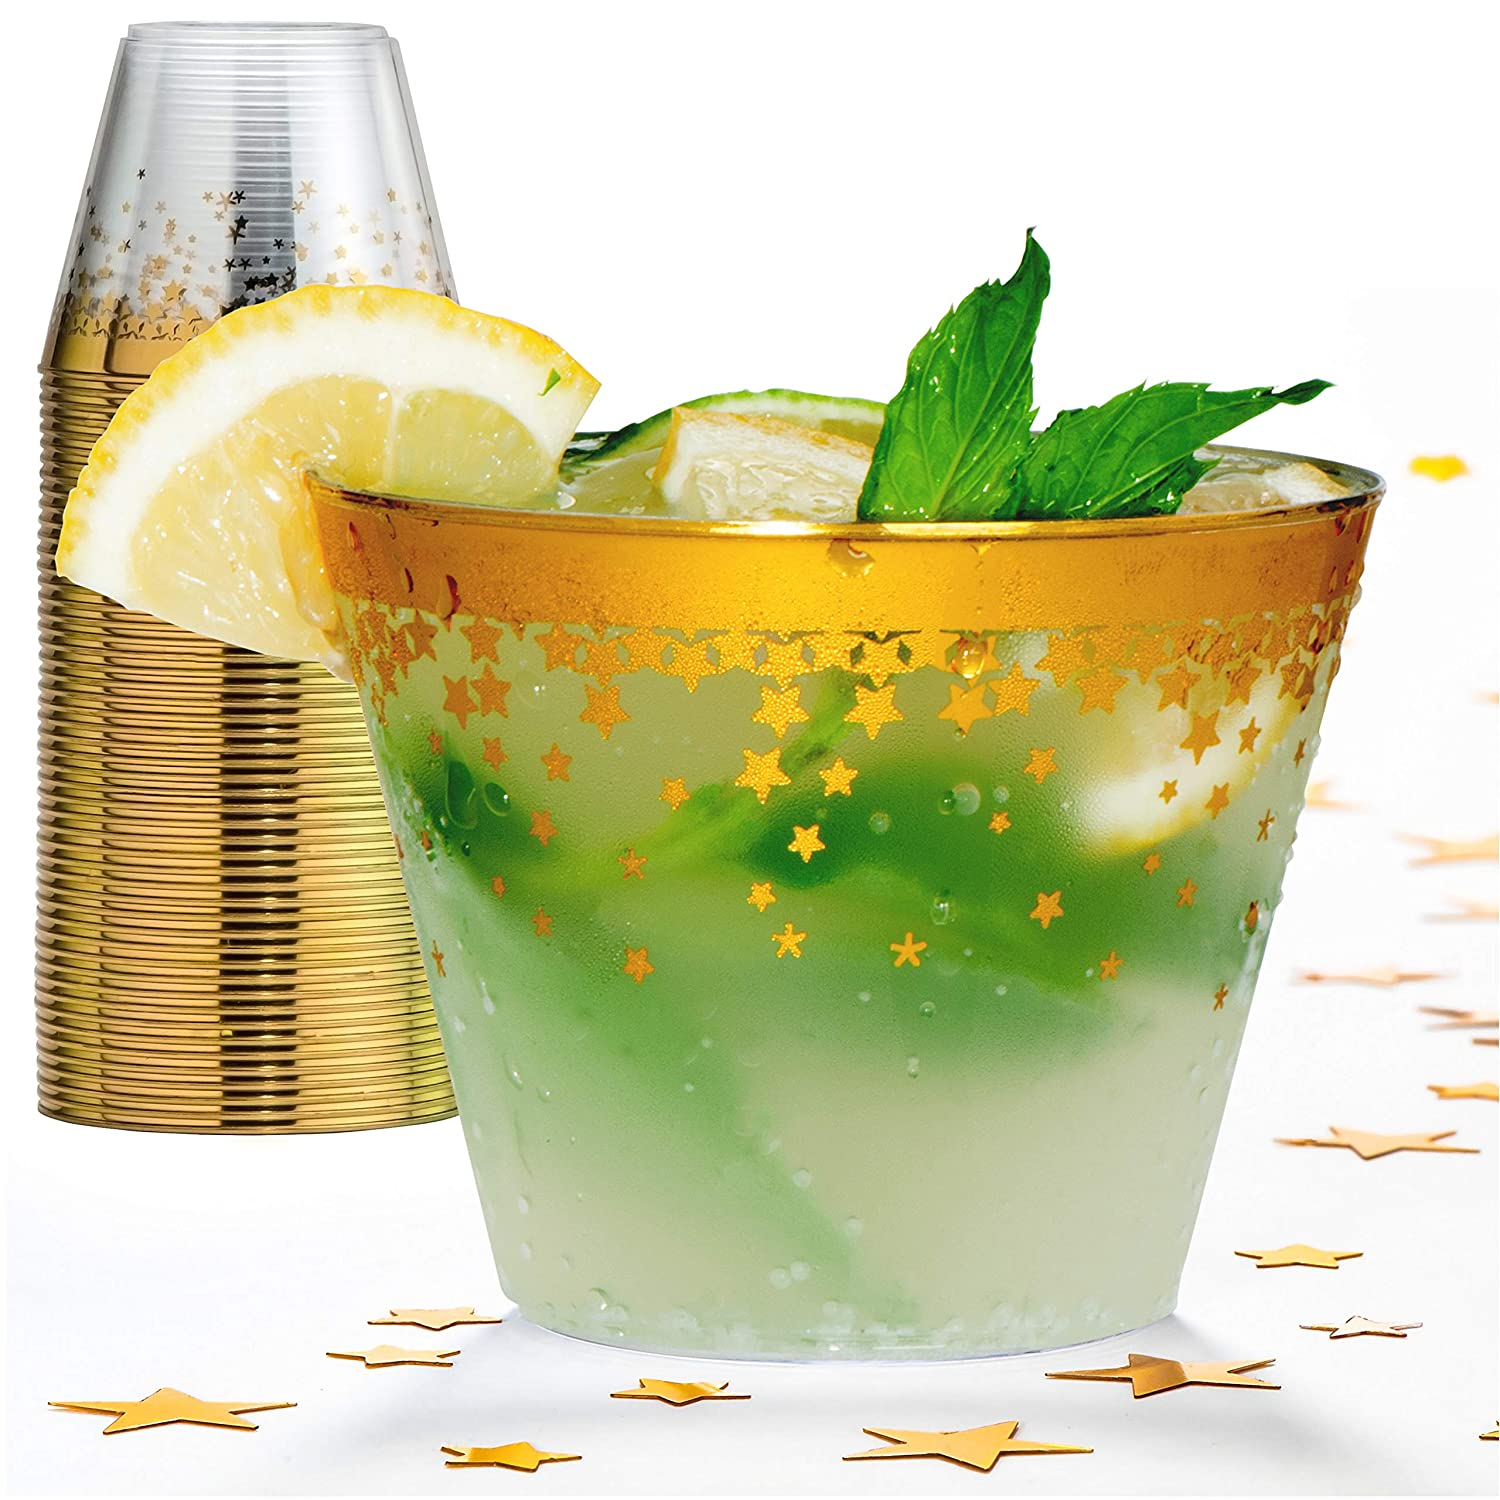 Gold Rim Plastic Party Cups – 9 Oz Disposable Plastic Tumblers 100 Count Clear Cocktail Glasses Tumblers Great Party & Hosting Supplies Wedding Showers Birthdays Bonus Decorative Star Design Conffeti